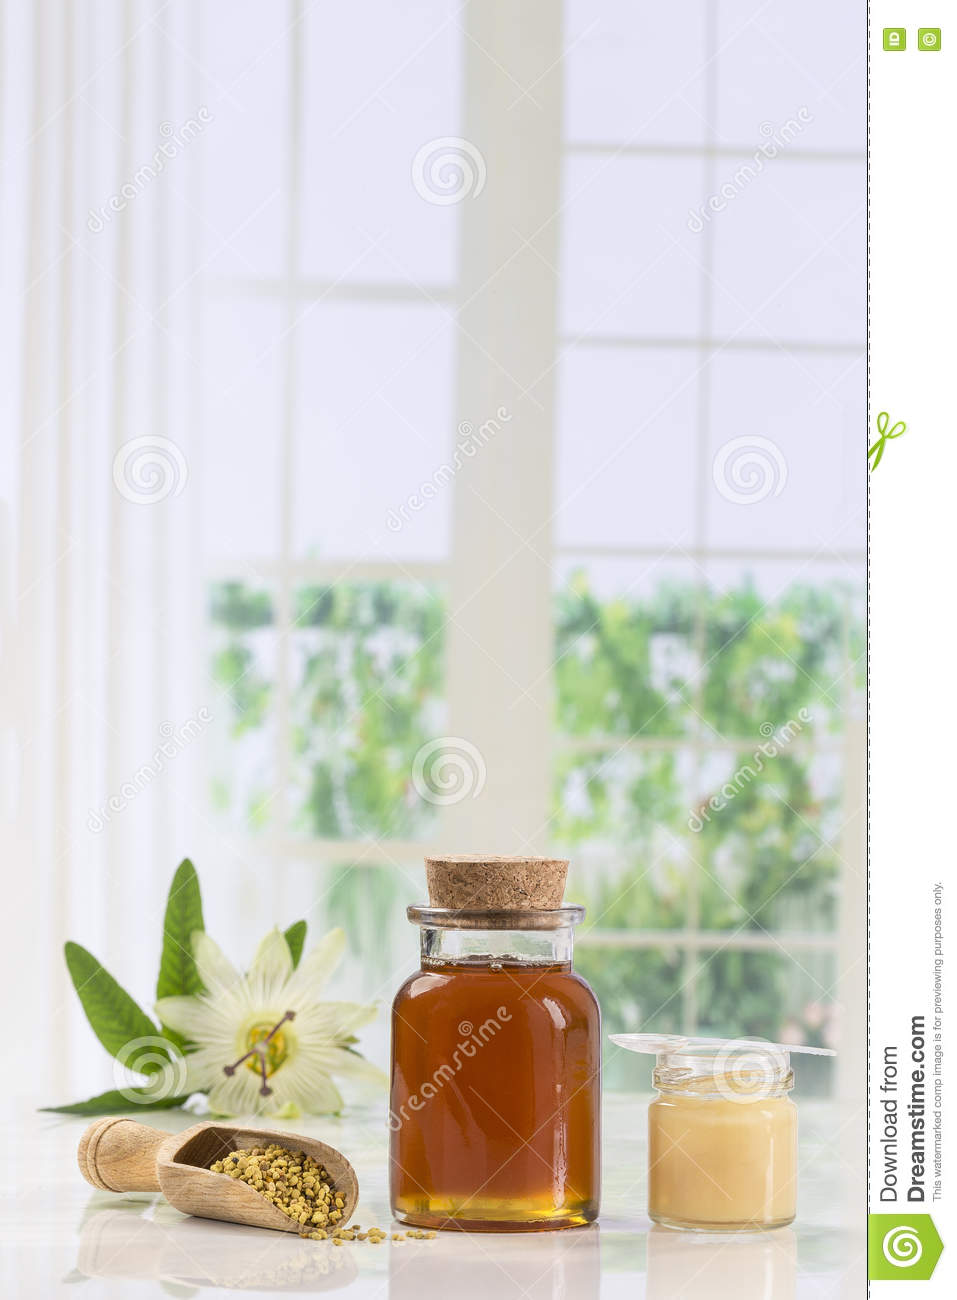 Golden Bee Pollen In Small Glass Jars With Royal Jelly And In A The